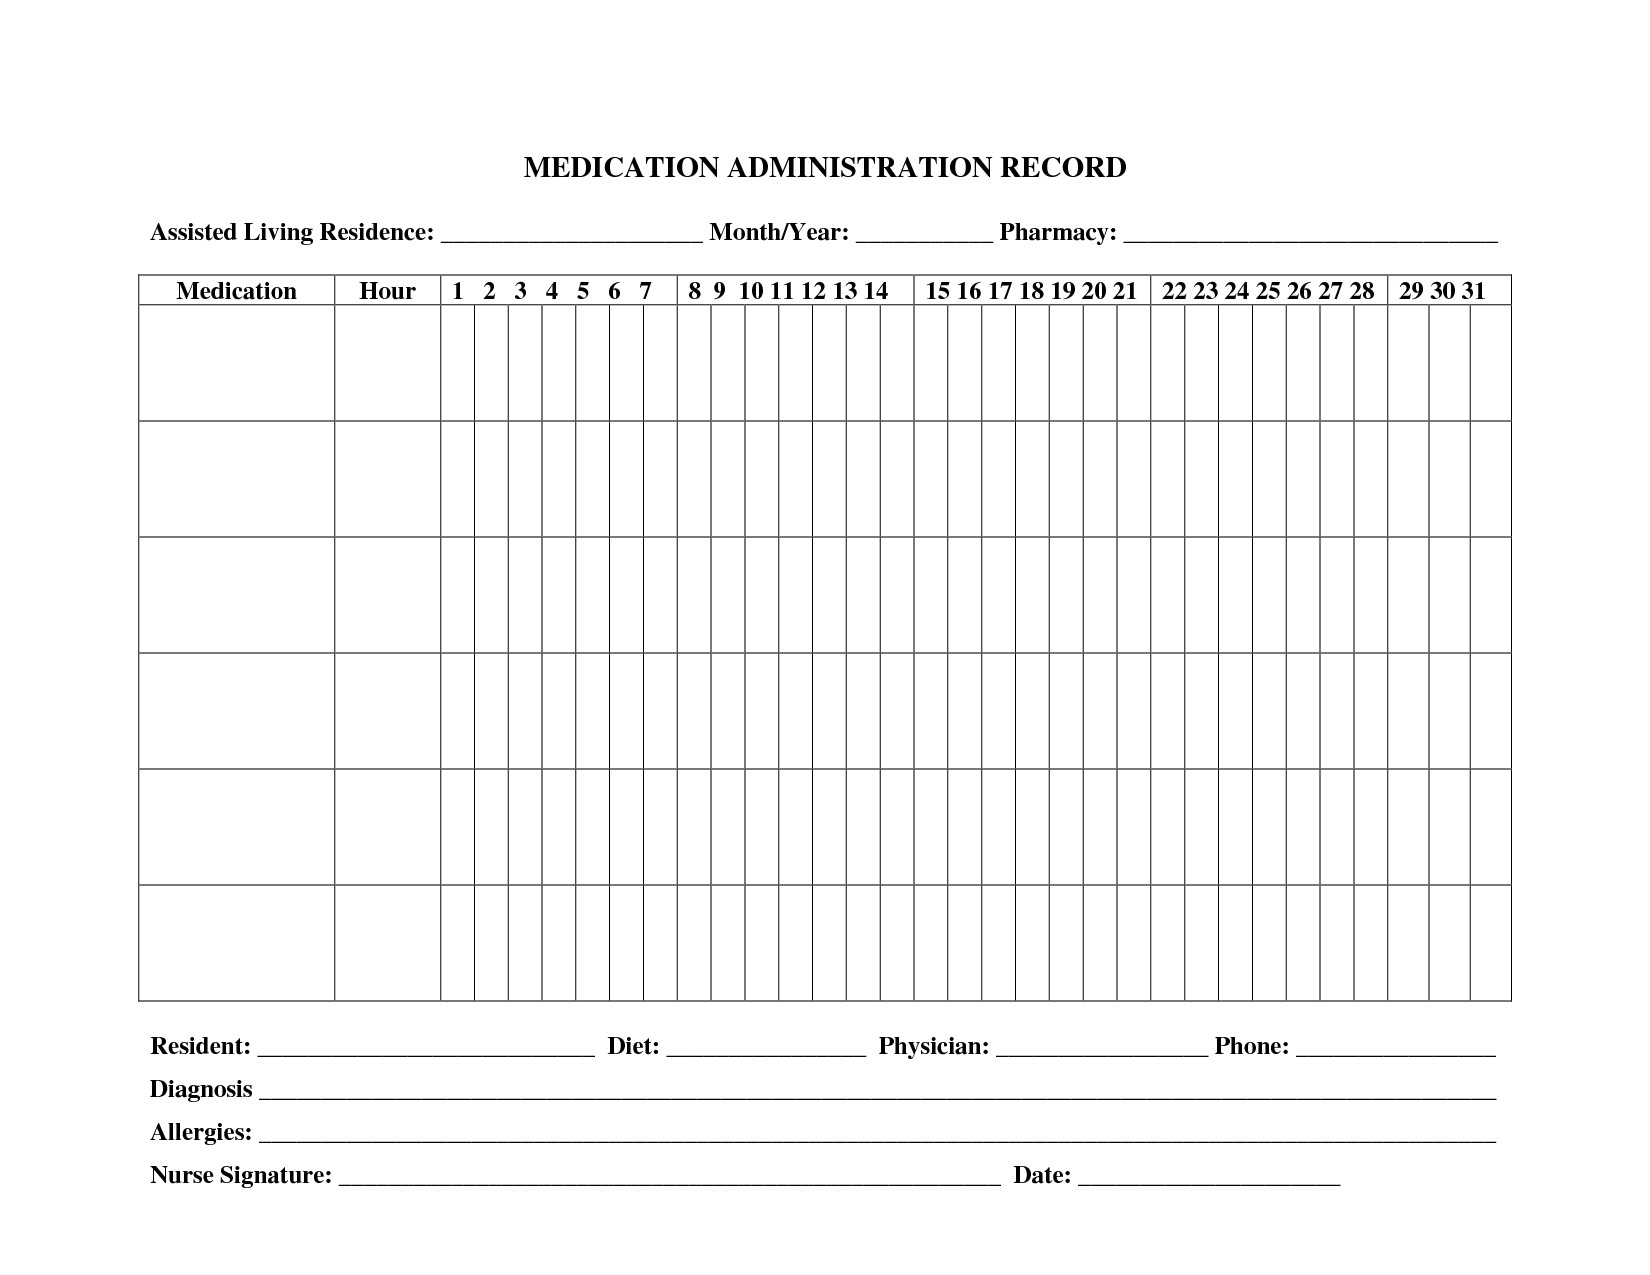 post administration record template medication chart 300208